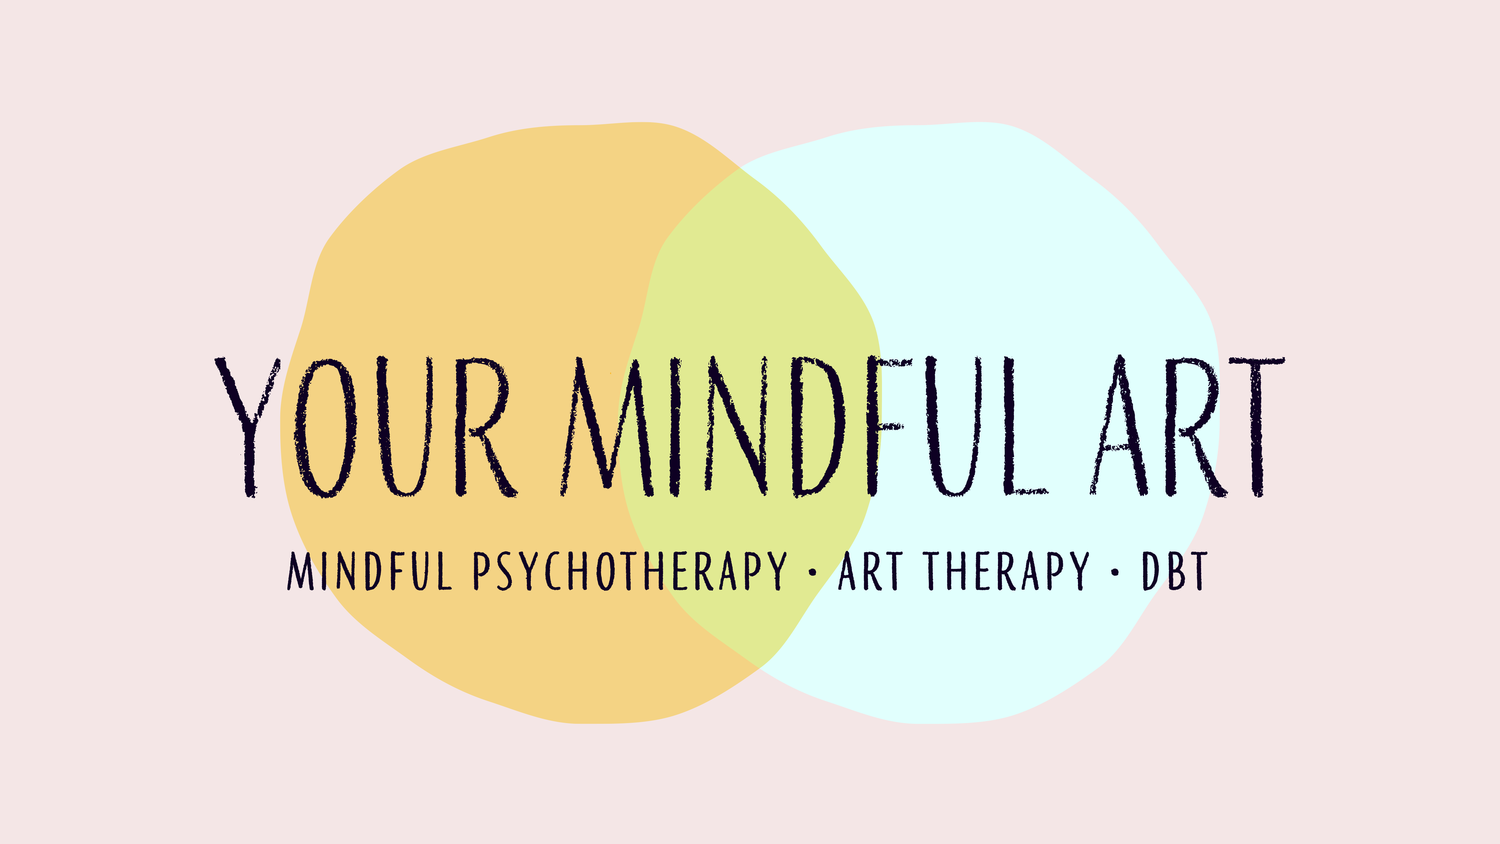 Your Mindful Art